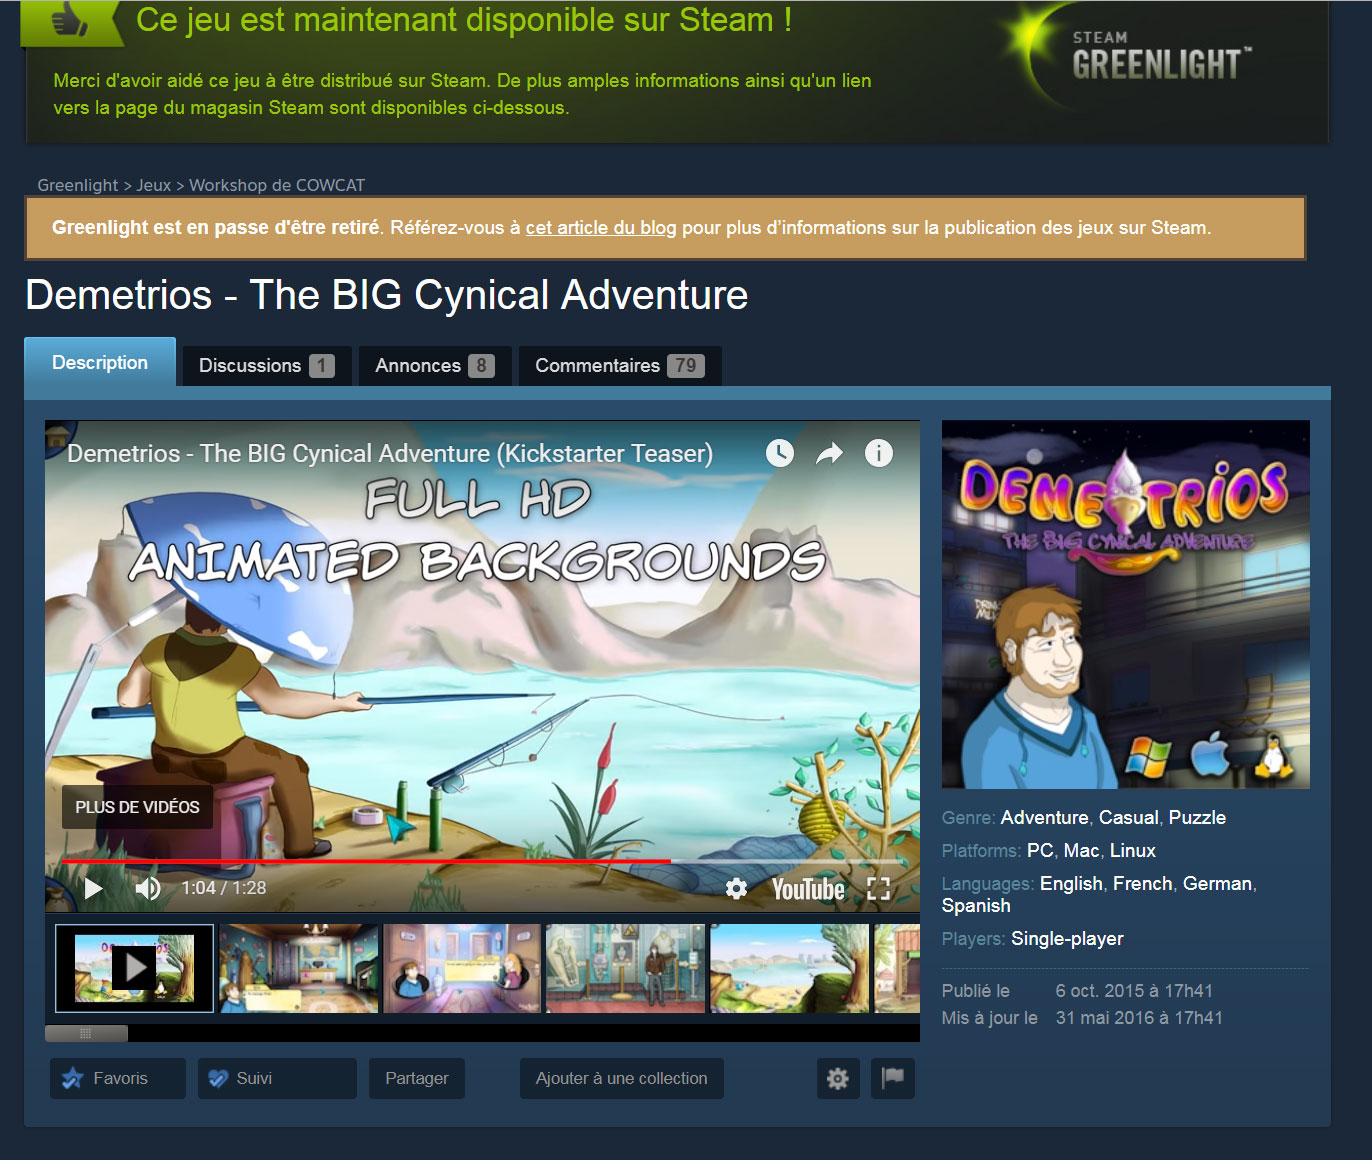 Steam Greenlight page